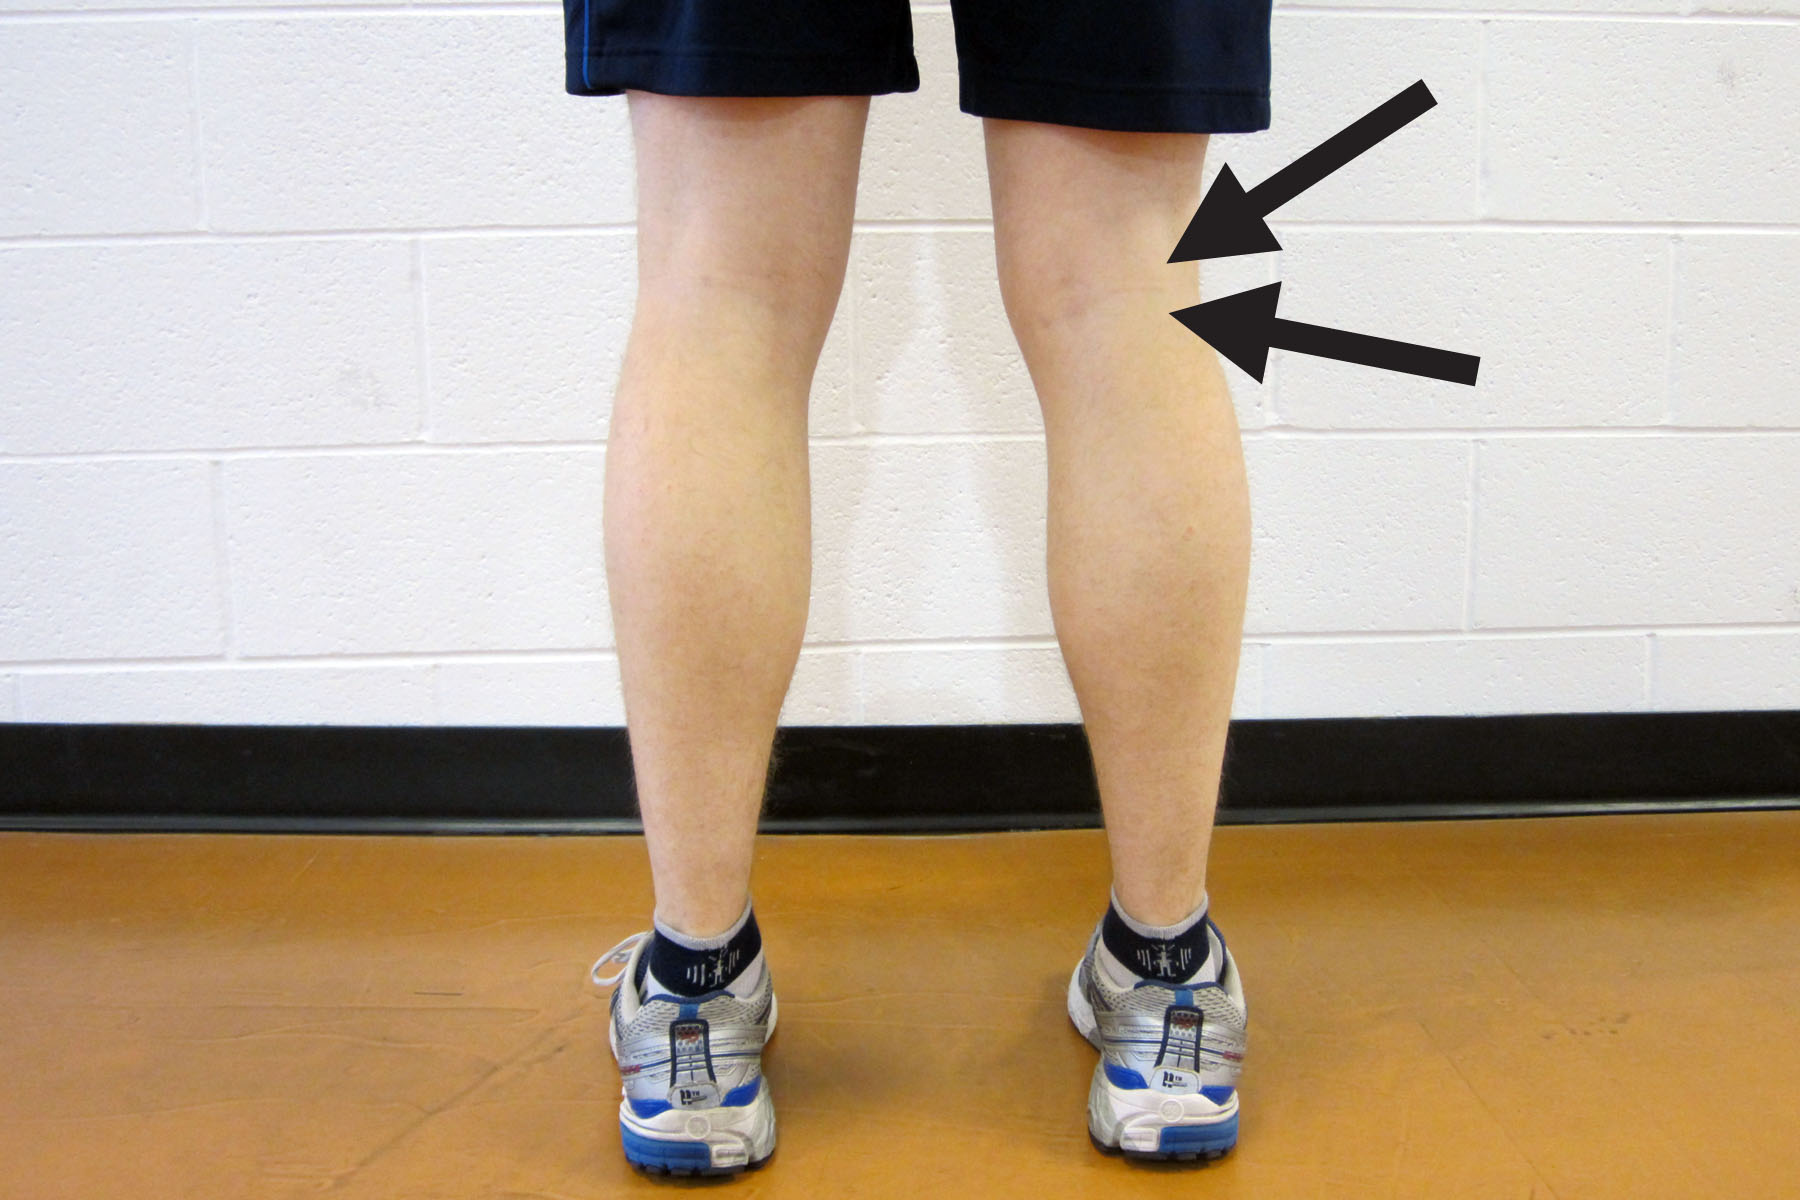 How To Get Rid Of Baker S Cyst Behind Knee Naturally